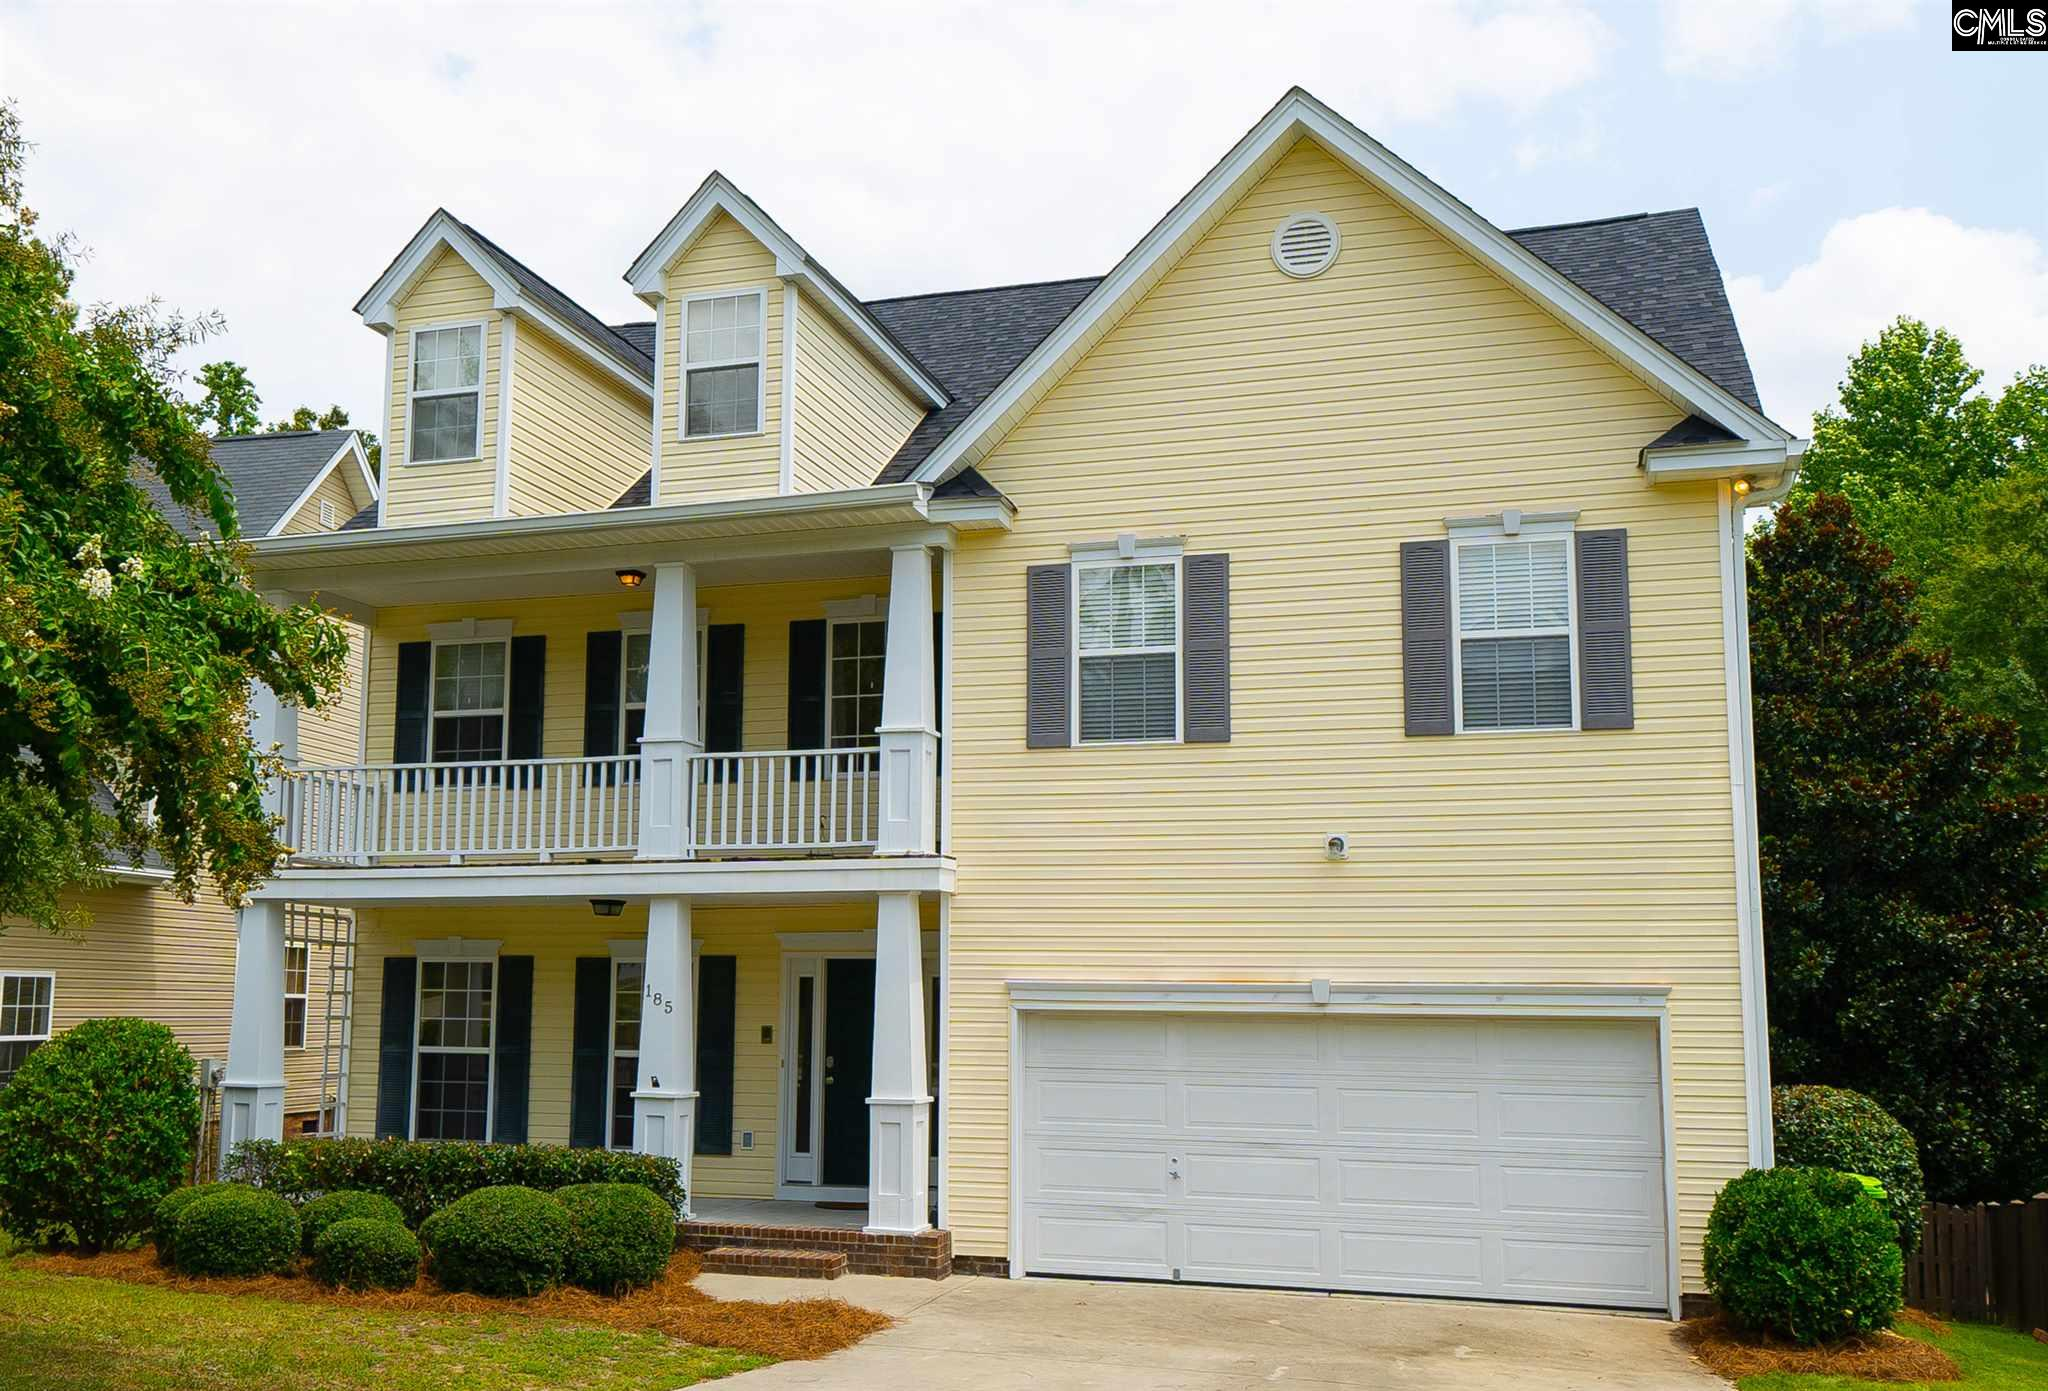 185 Berkeley Ridge Columbia, SC 29229